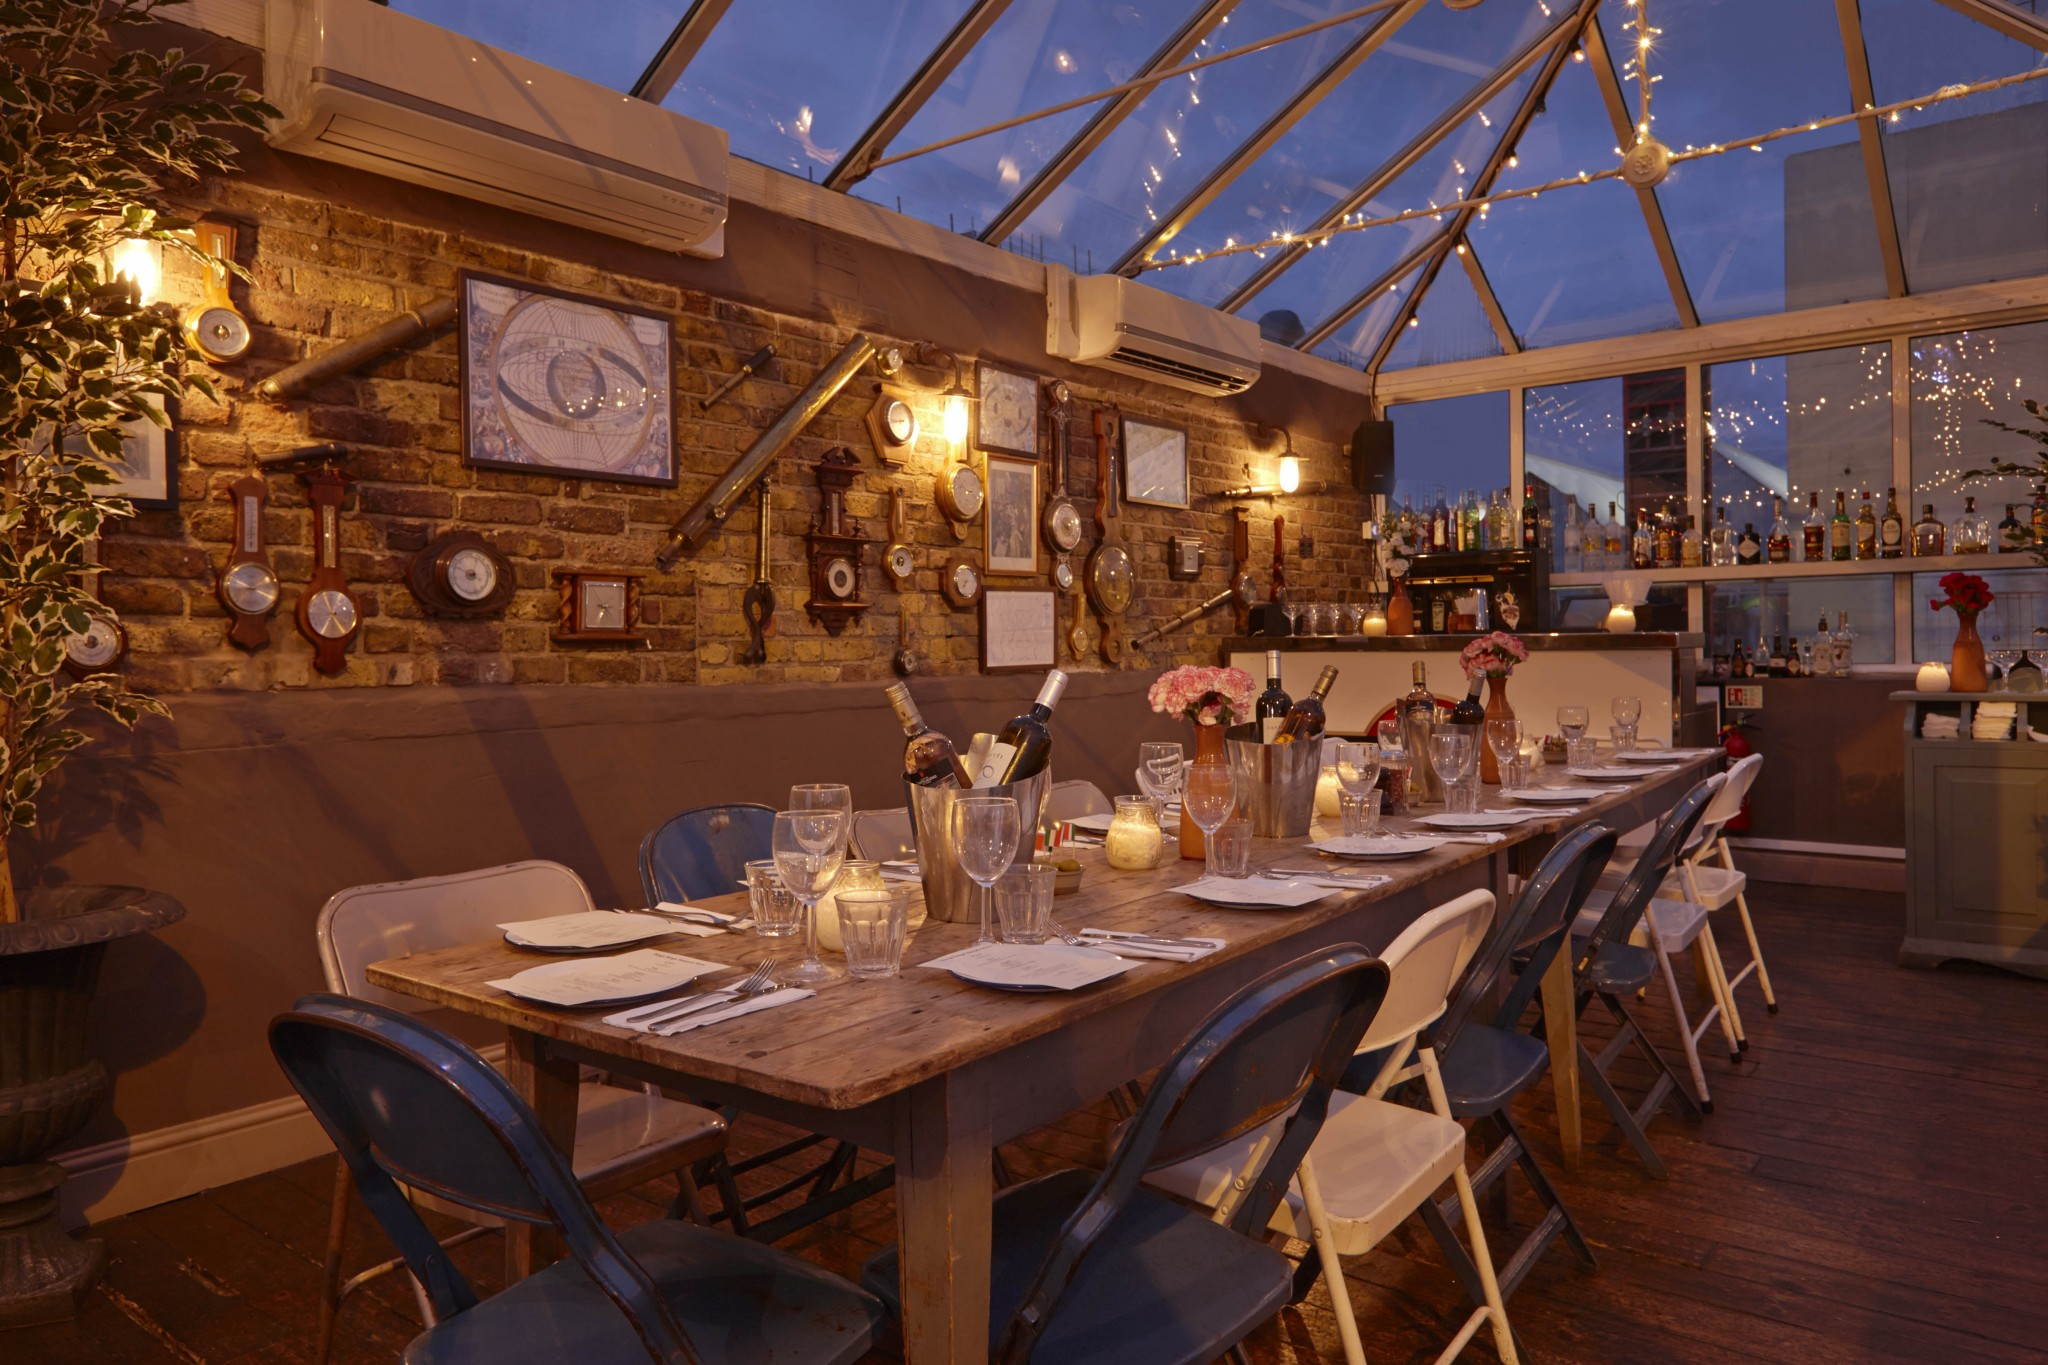 small private dining rooms london | Why book Private Dining in London? | Function Fixers